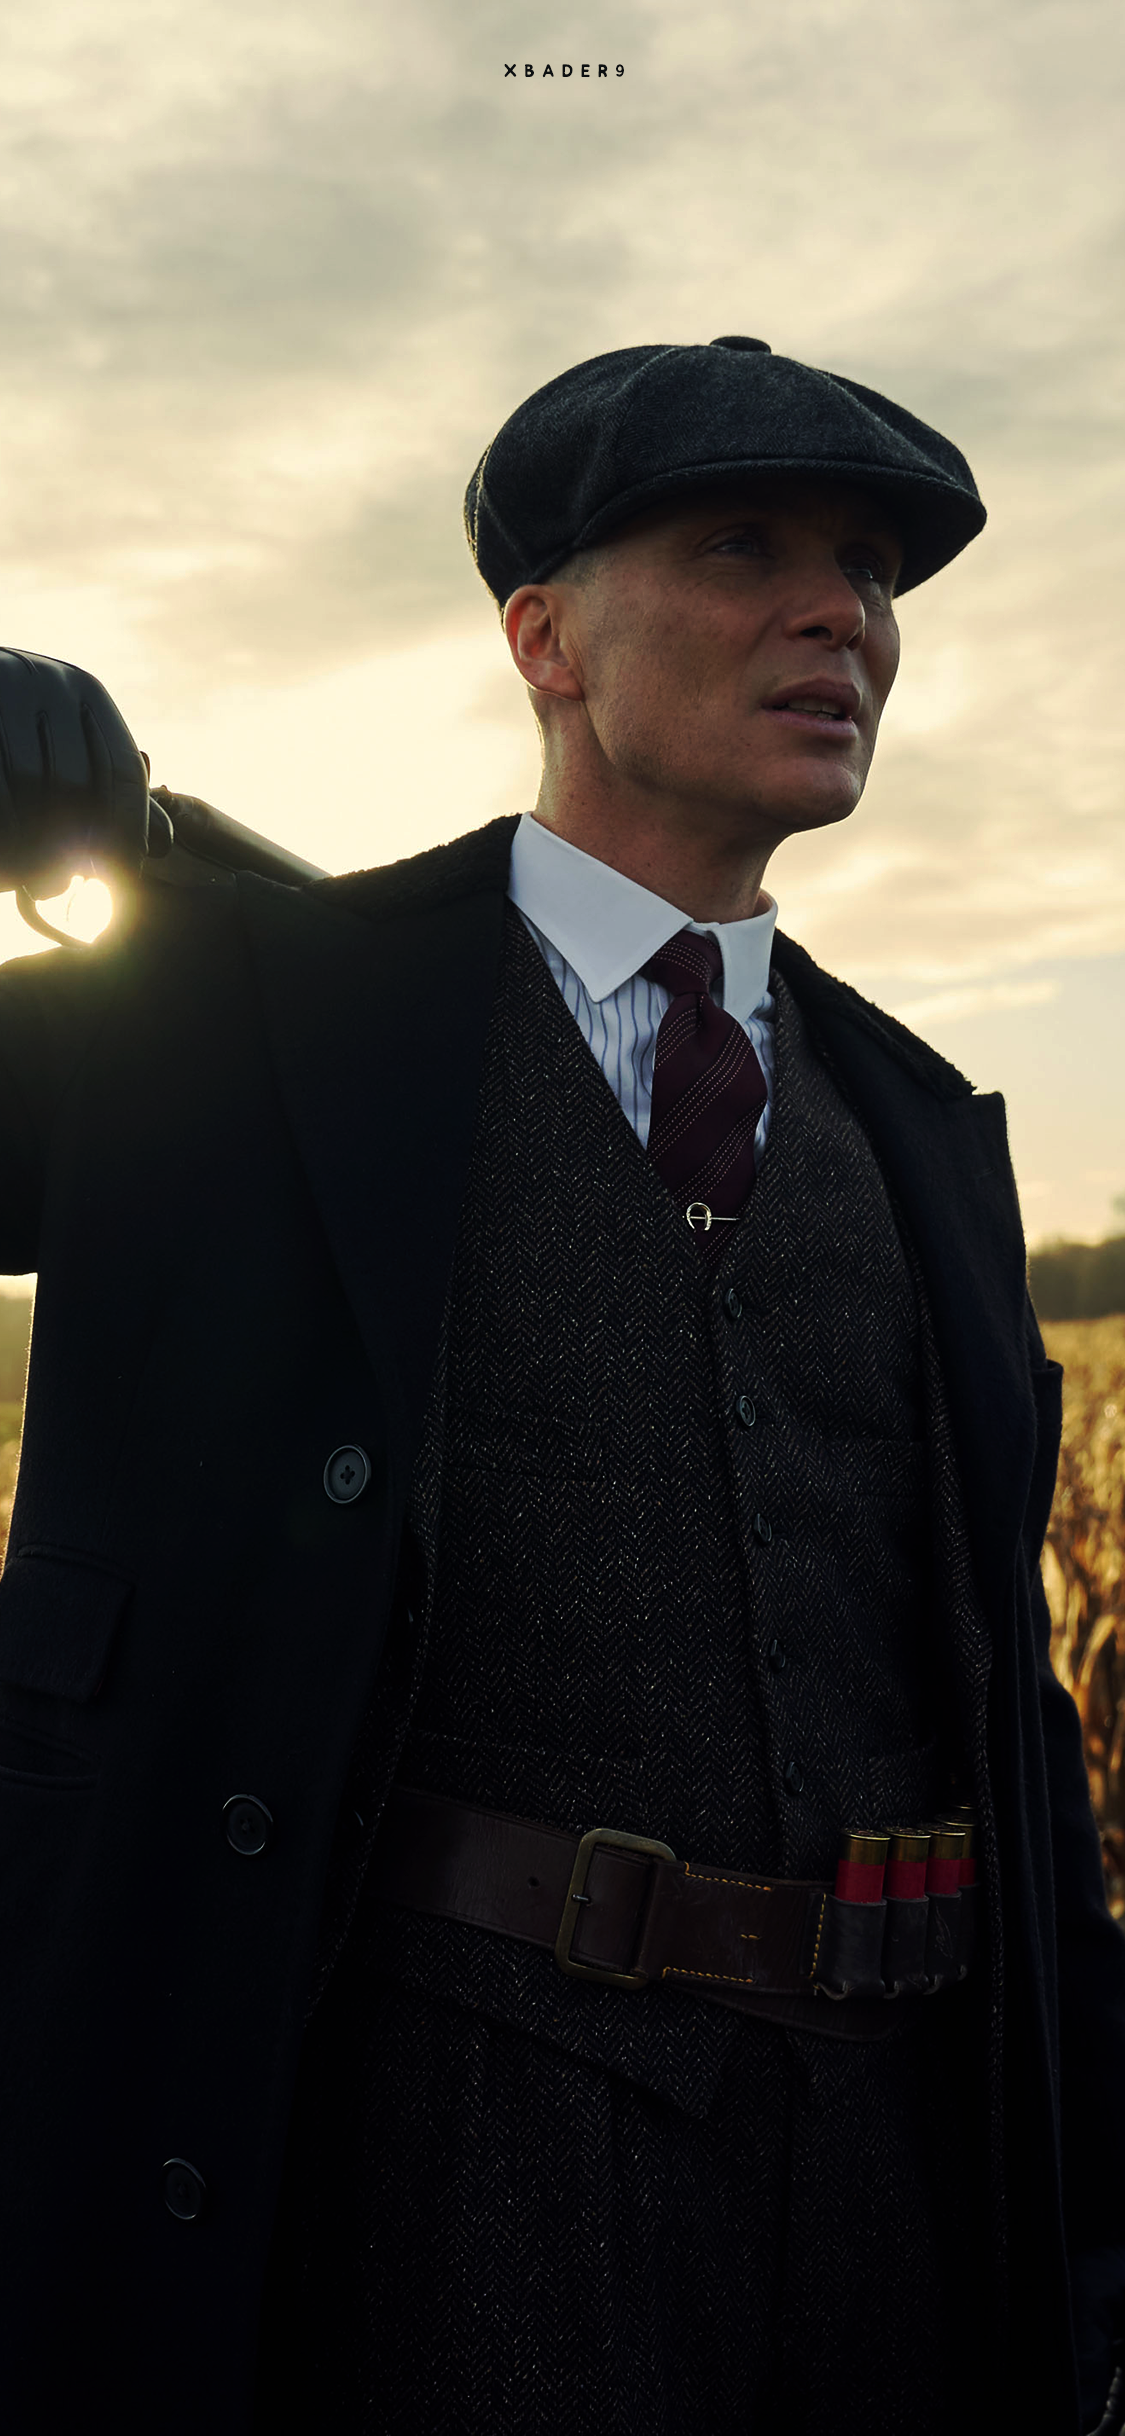 Peaky Blinders Phone Quotes Wallpapers - Wallpaper Cave